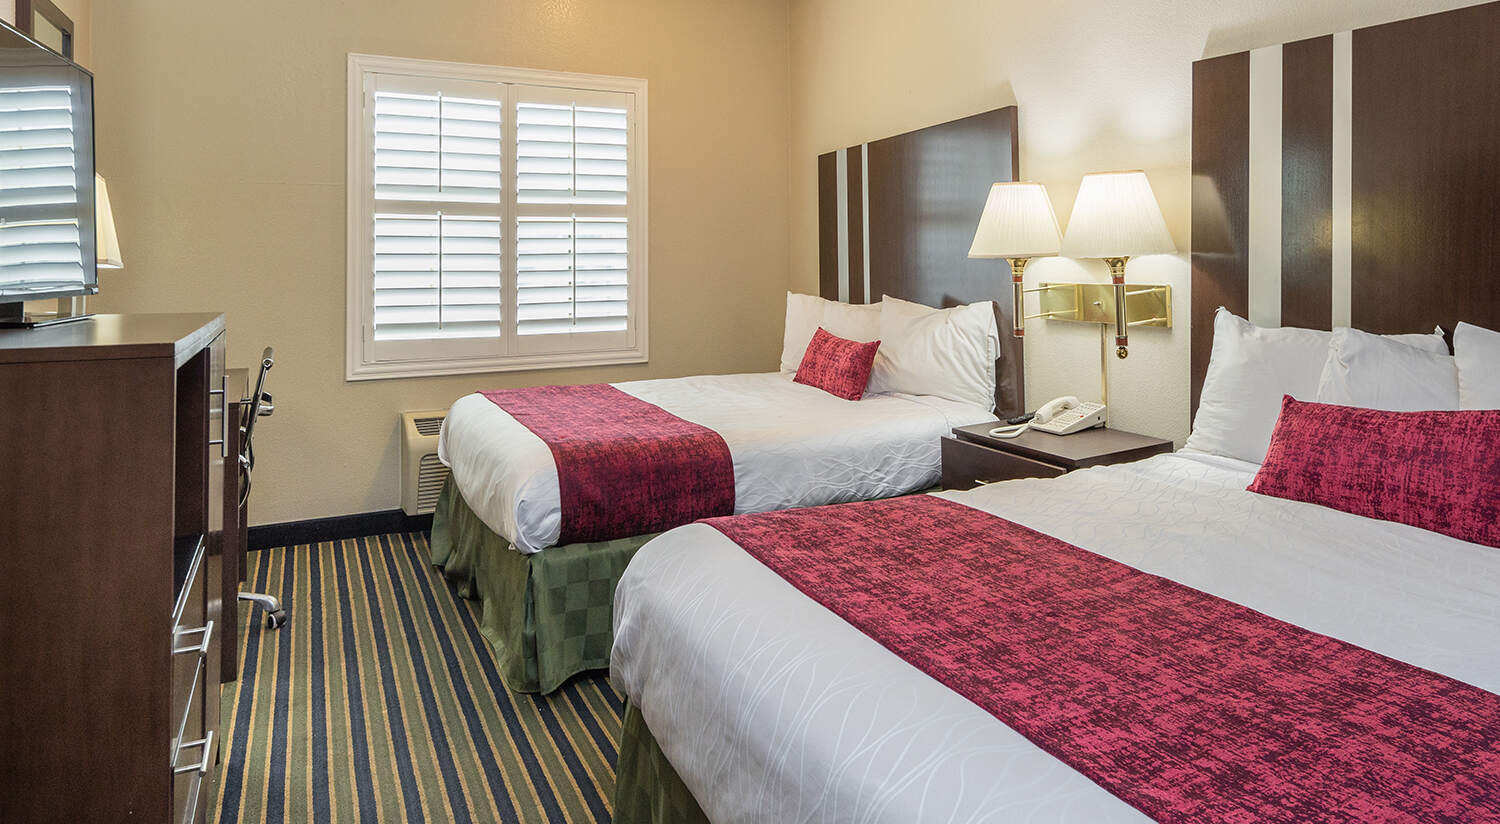 EXPERIENCE FAMILY-FRIENDLY LODGING IN THE HEART OF SILICON VALLEY THE TRAVEL INN SUNNYVALE OFFERS SPACIOUS GUEST ROOMS FOR GROUPS